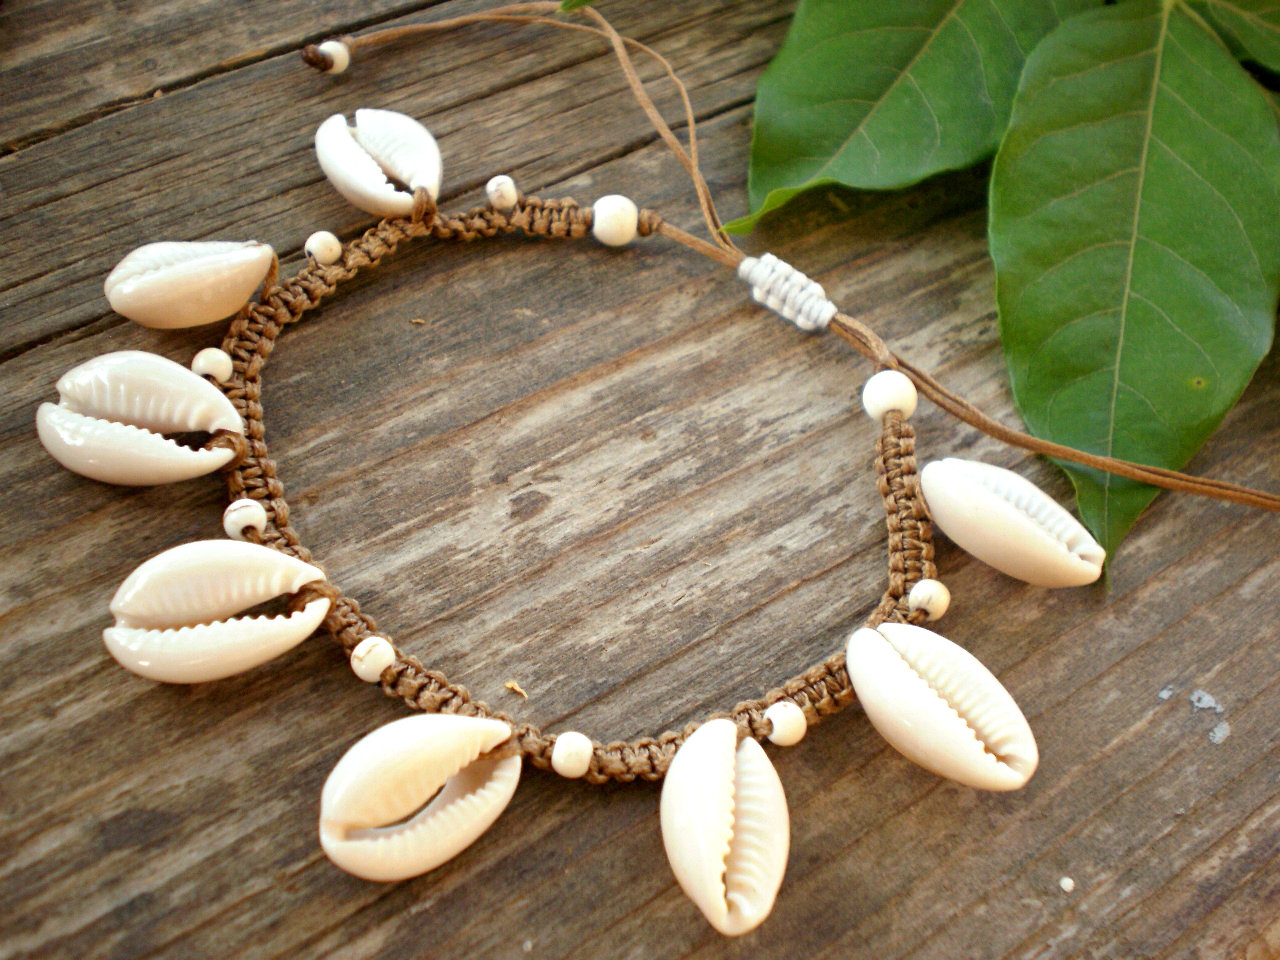 Trendy Puka Shell Beaded Braided Hairstyles Intended For Seashell Anklet, Braided Ankle Bracelet With Cowrie Sea Shells (View 15 of 20)